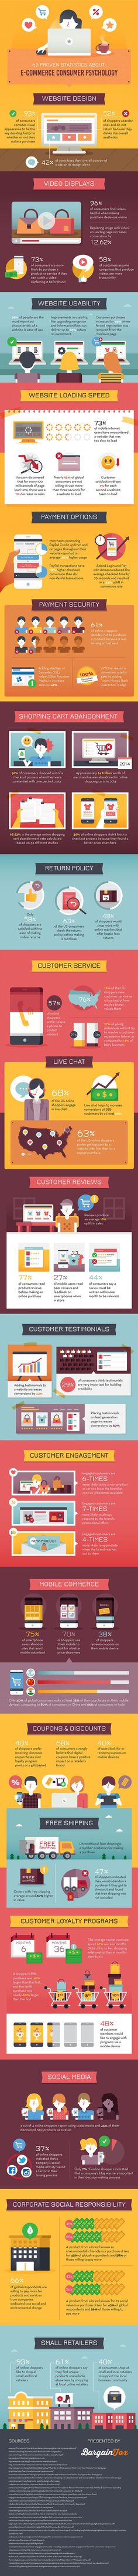 Check out 65 proven statistics about E-Commerce Consumer Psychology. #ecommerce #consumer #infographic